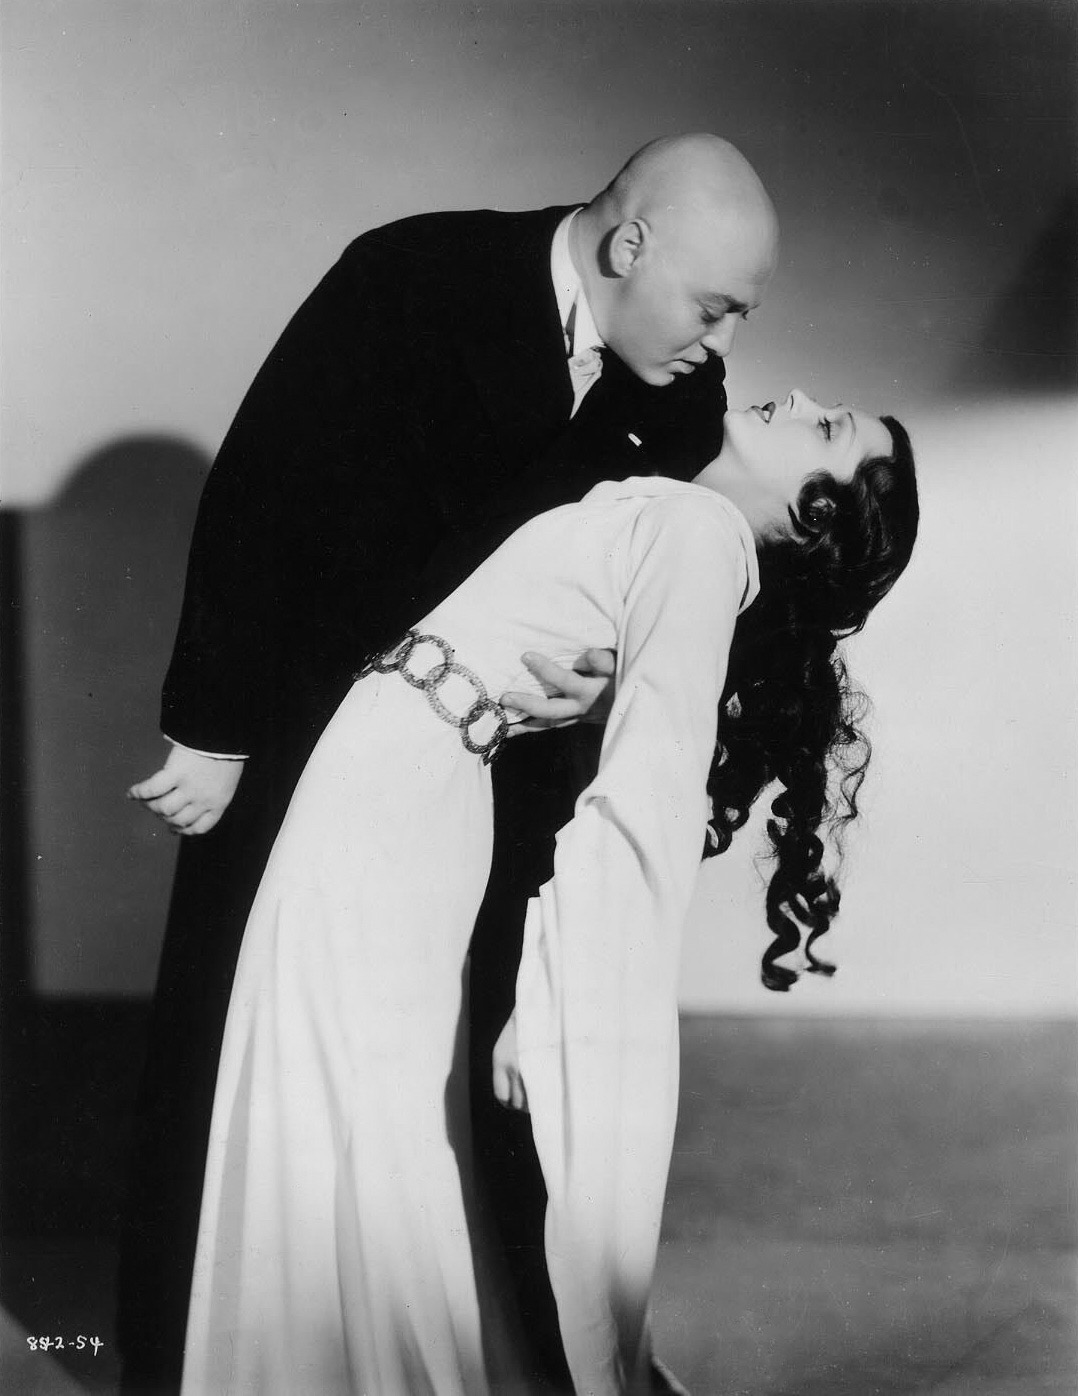 Peter Lorre and Frances Drake in Mad Love (1935)